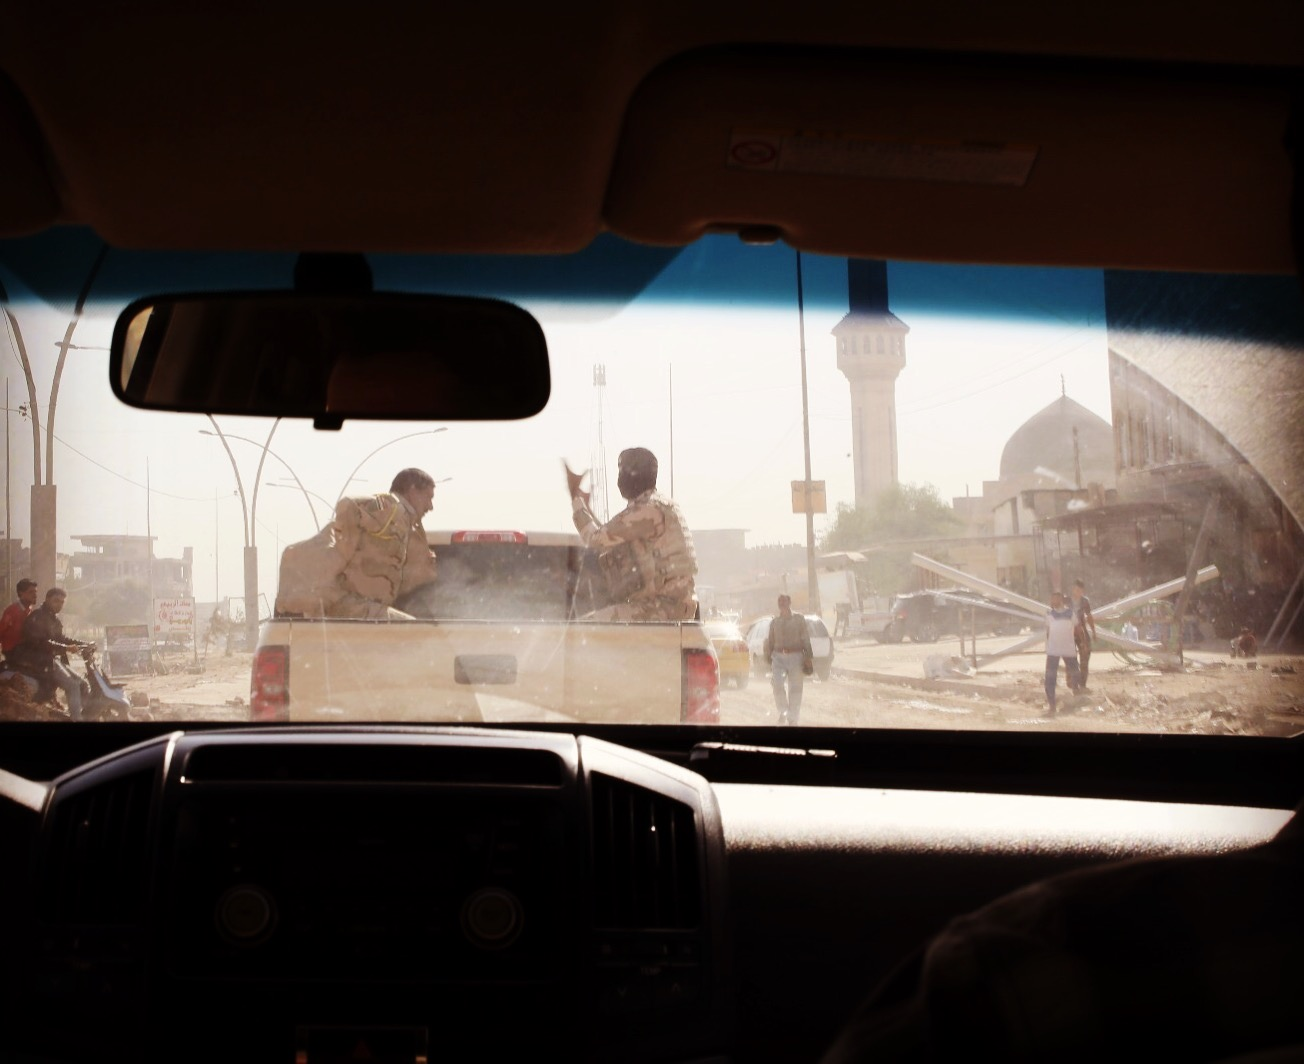 Mosul through a windscreen following a truck with soldiers in